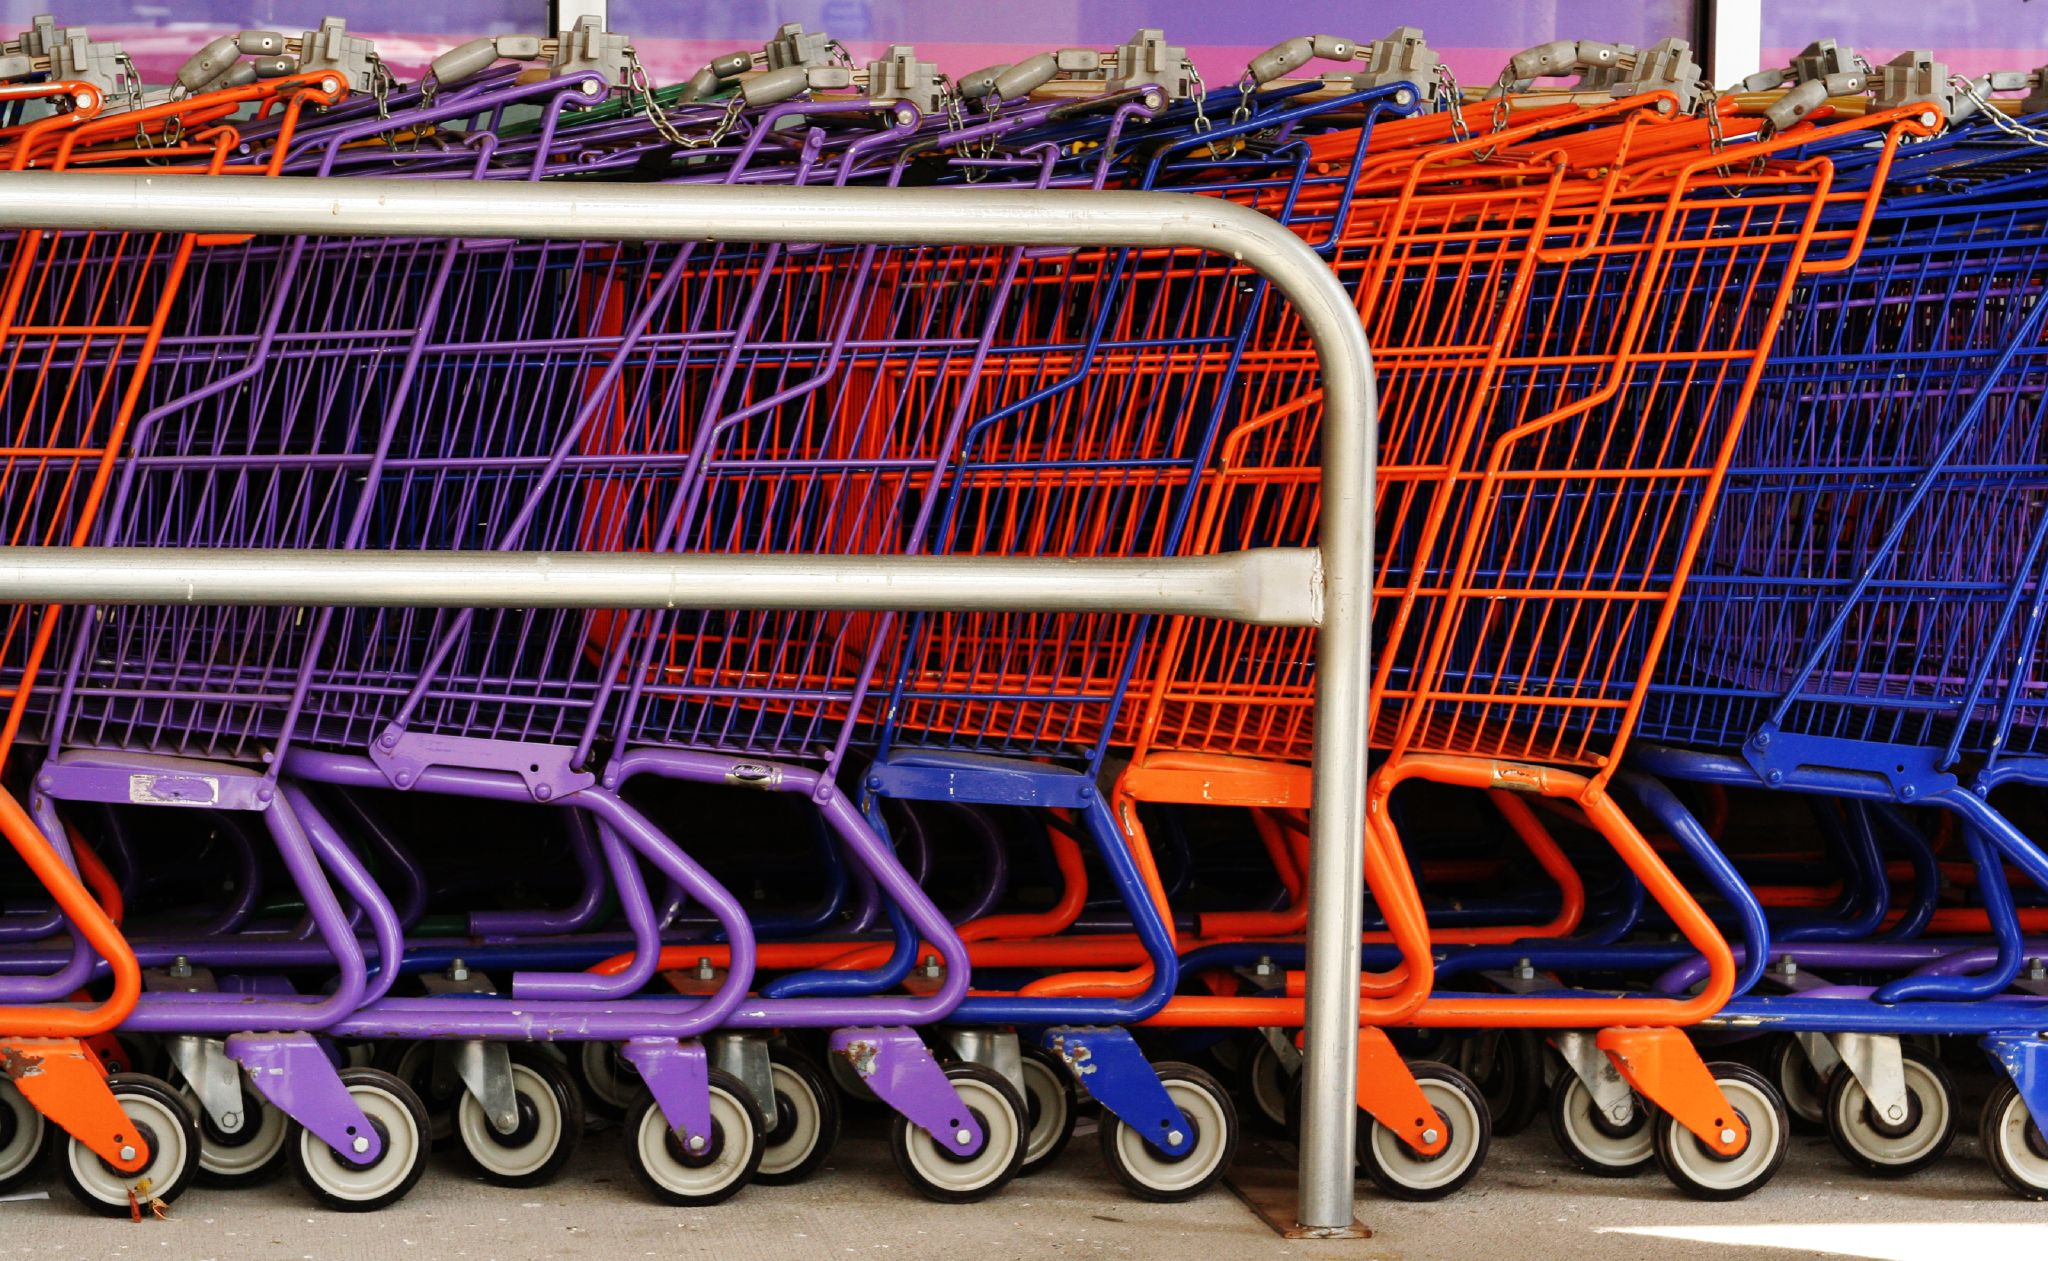 http://upload.wikimedia.org/wikipedia/commons/7/75/Colourful_shopping_carts.jpg